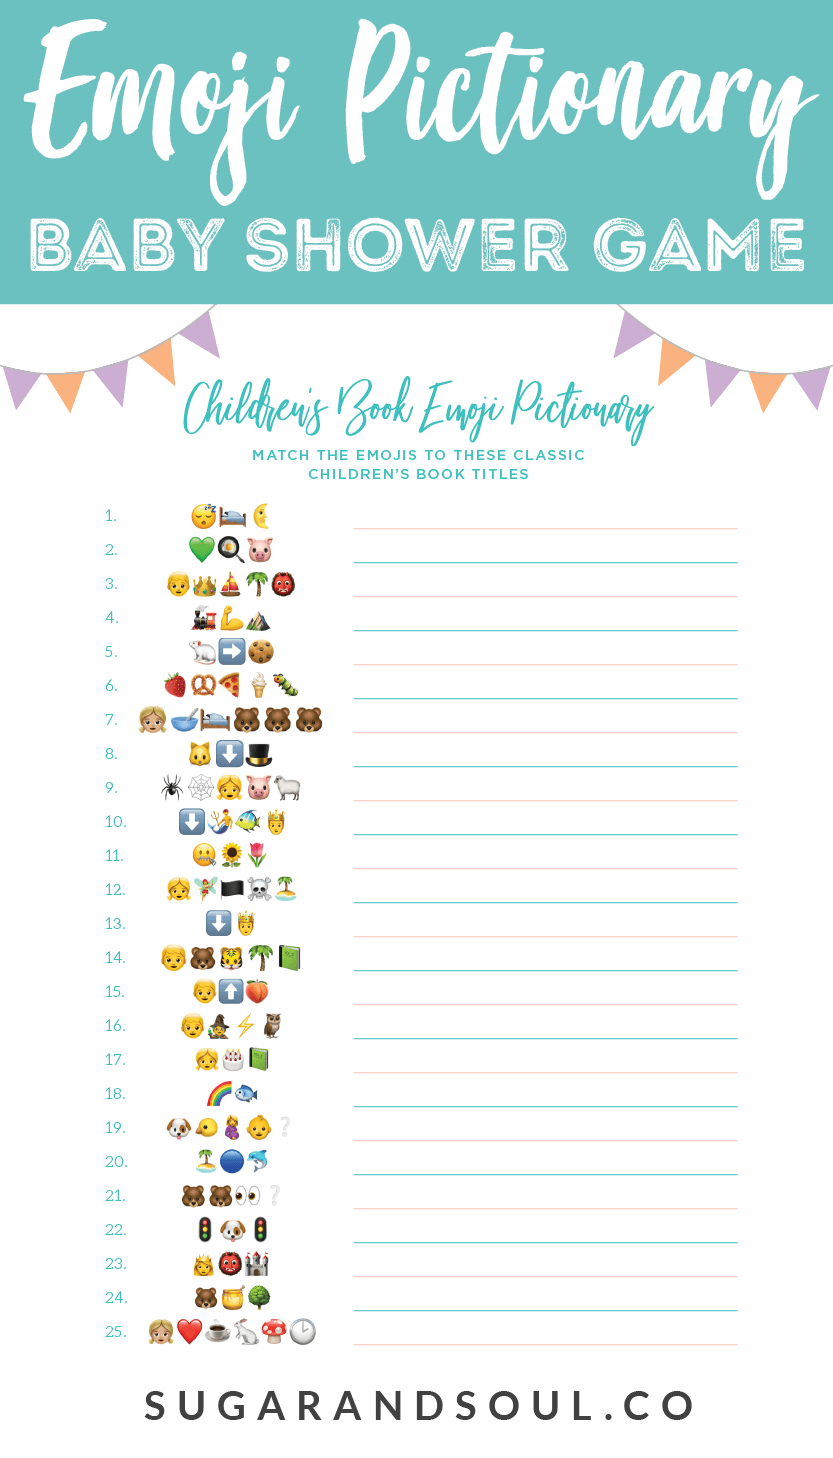 This Free Emoji Pictionary Baby Shower Game Printable Uses Emoji - Free Printable Online Baby Shower Games